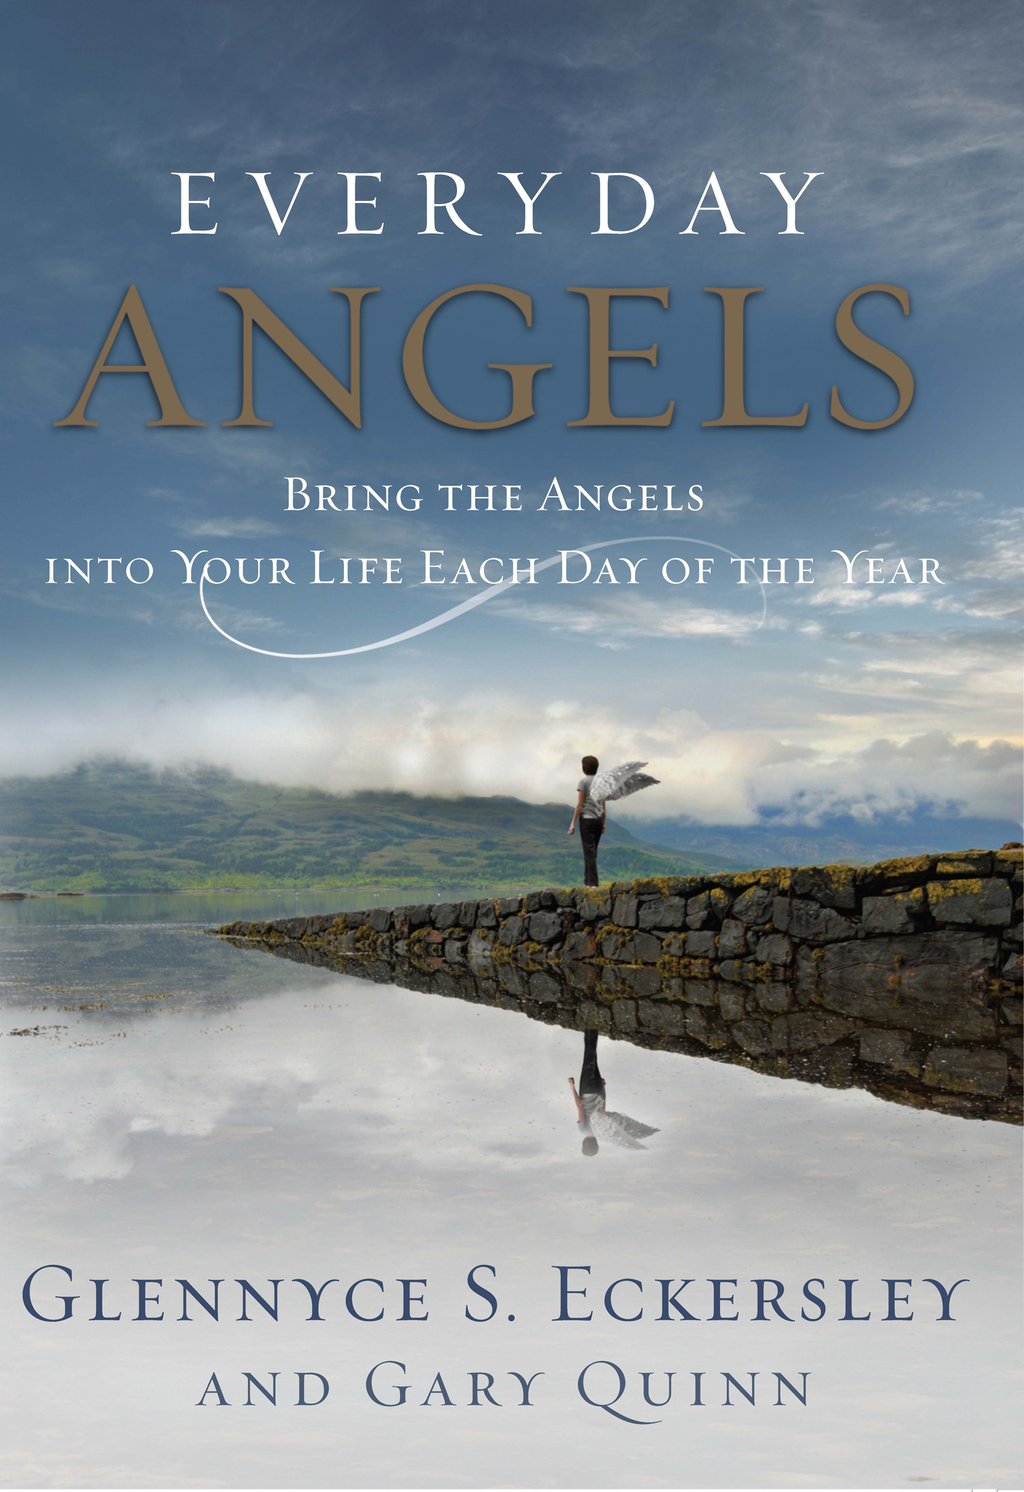 Everyday Angels: Bring the Angels into Your Life Each Day of the Year By: Gary Quinn,Glennyce Eckersley